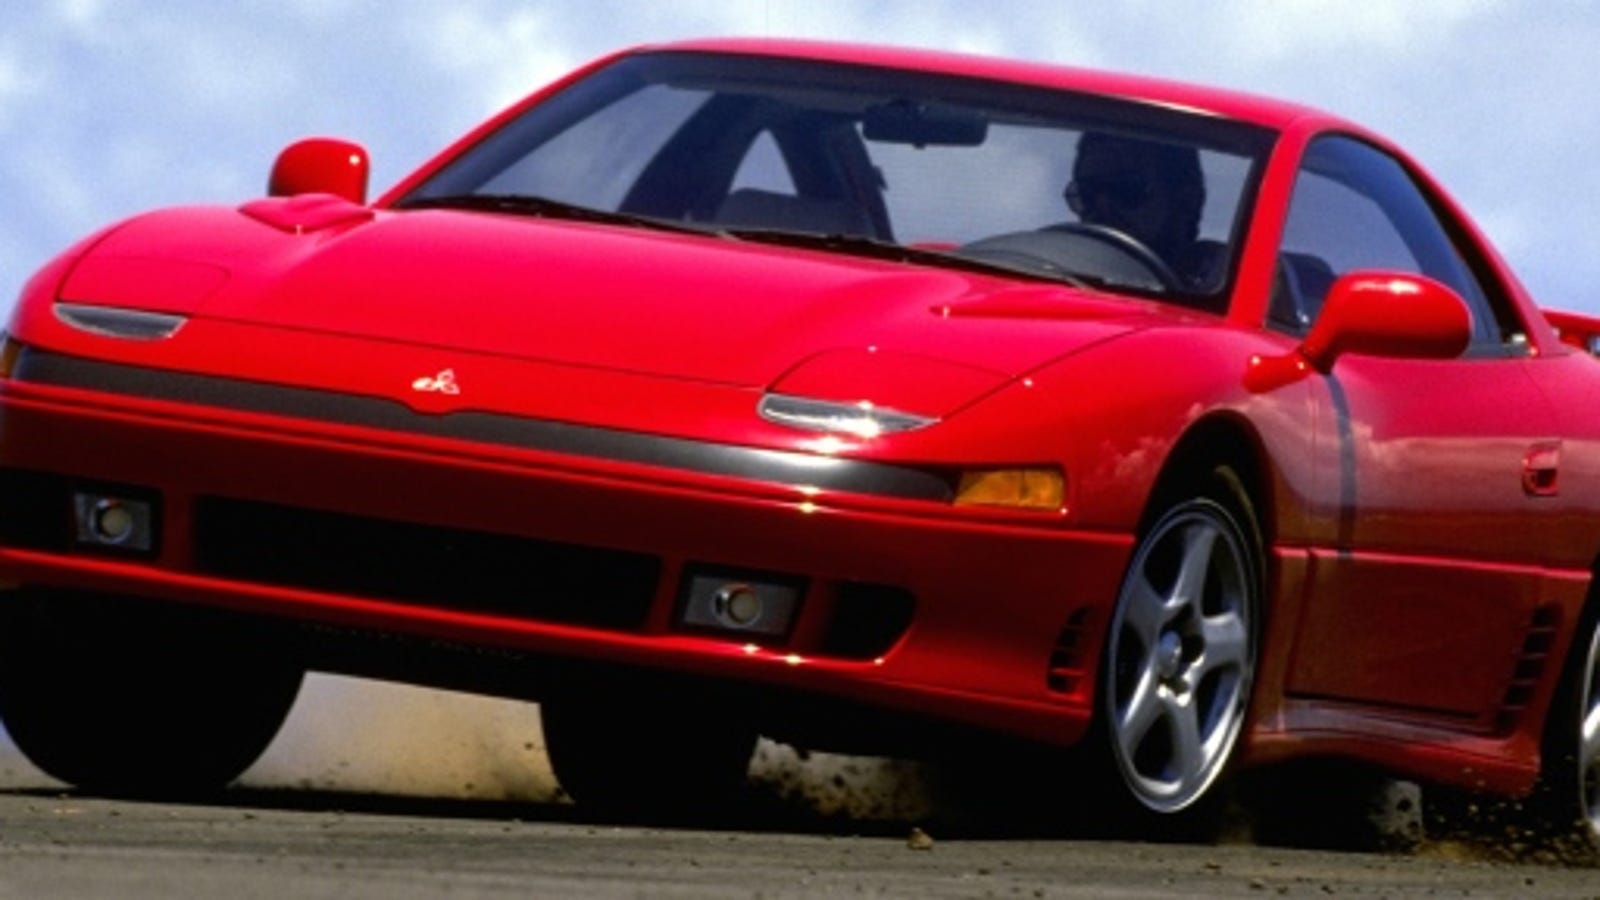 Here Are Ten Of The Best \'90s Cars On eBay For Less Than $9,000